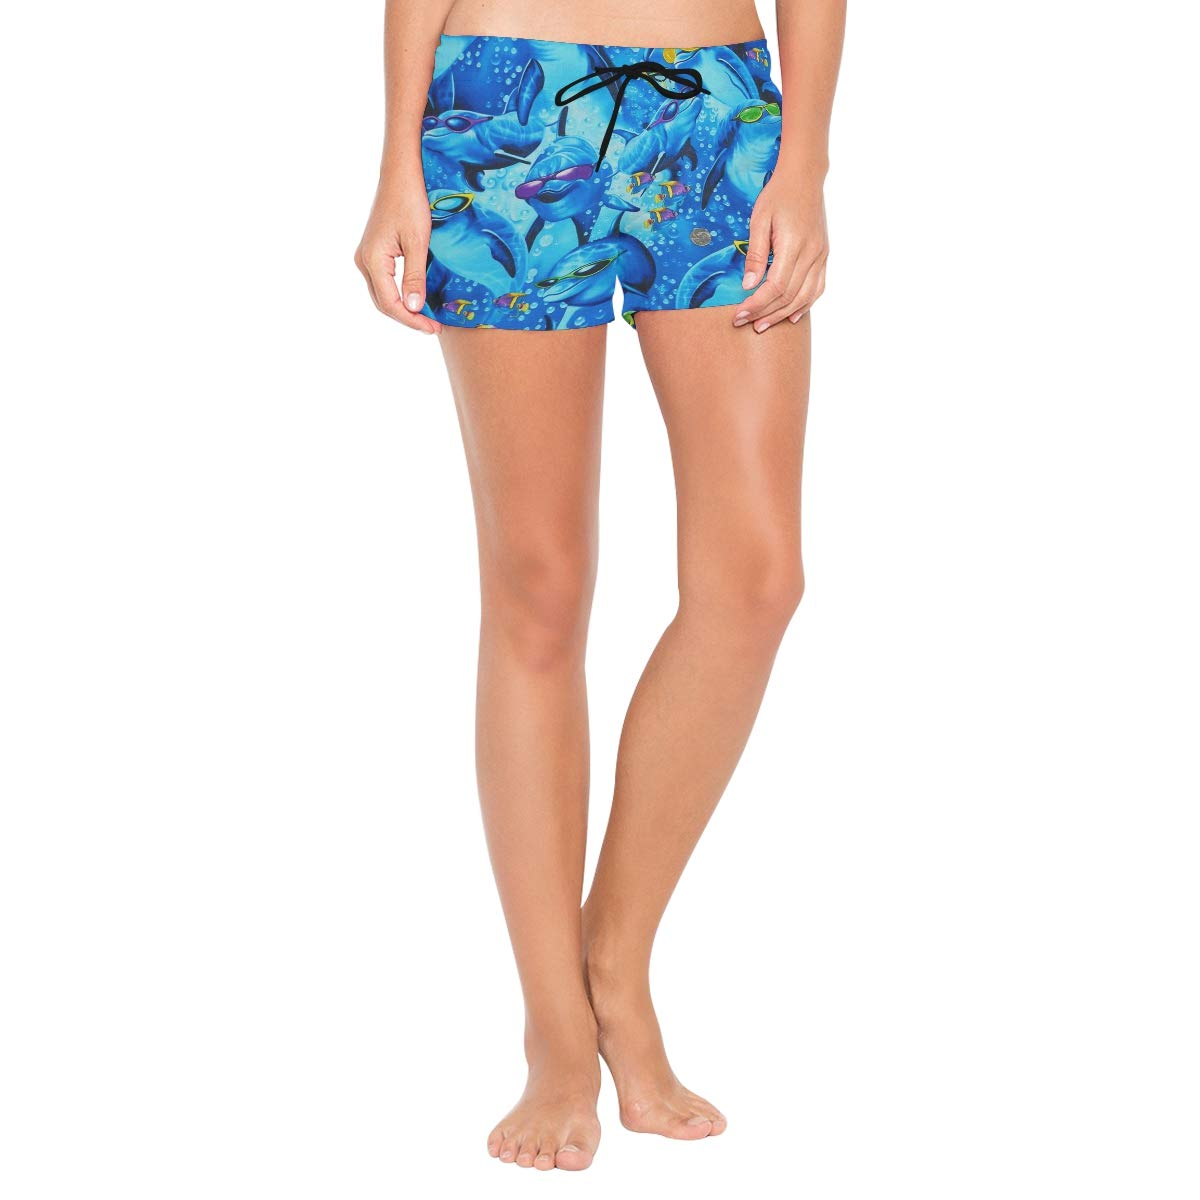 Sunglasses Dolphin Gang Womens Quick Dry Swim Trunks Swimming Shorts with Mesh Liner